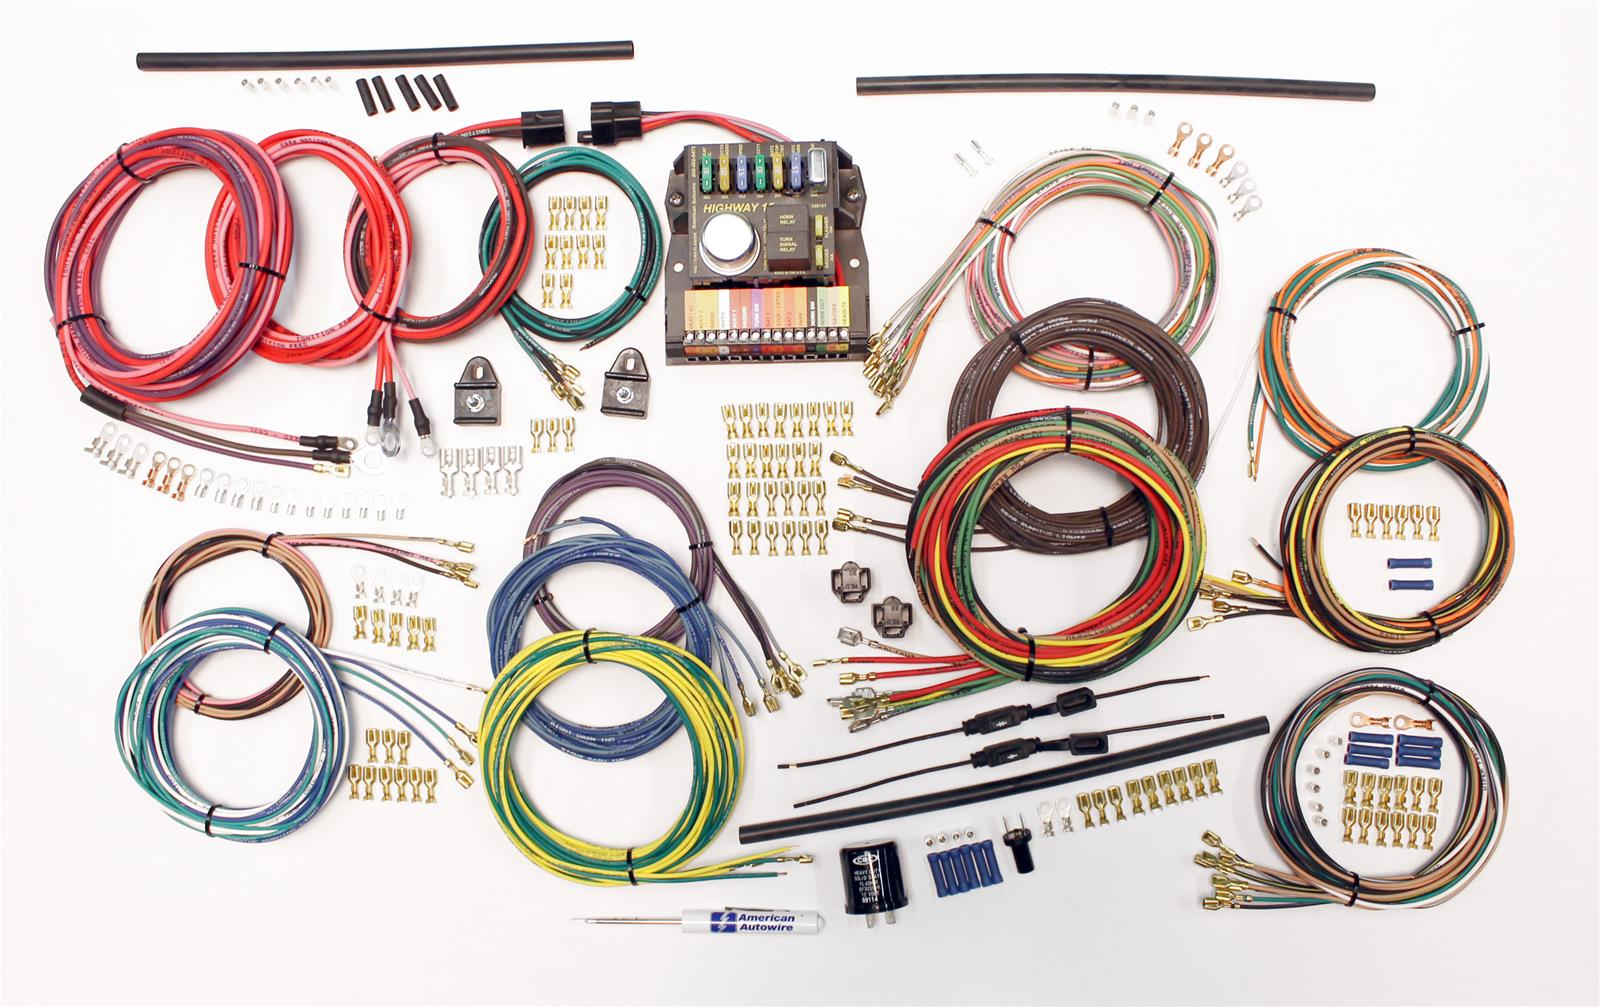 american autowire classic update series wiring harness kits 510419 rh summitracing com Custom Automotive Wiring Harness Kits american auto wire gauge harness